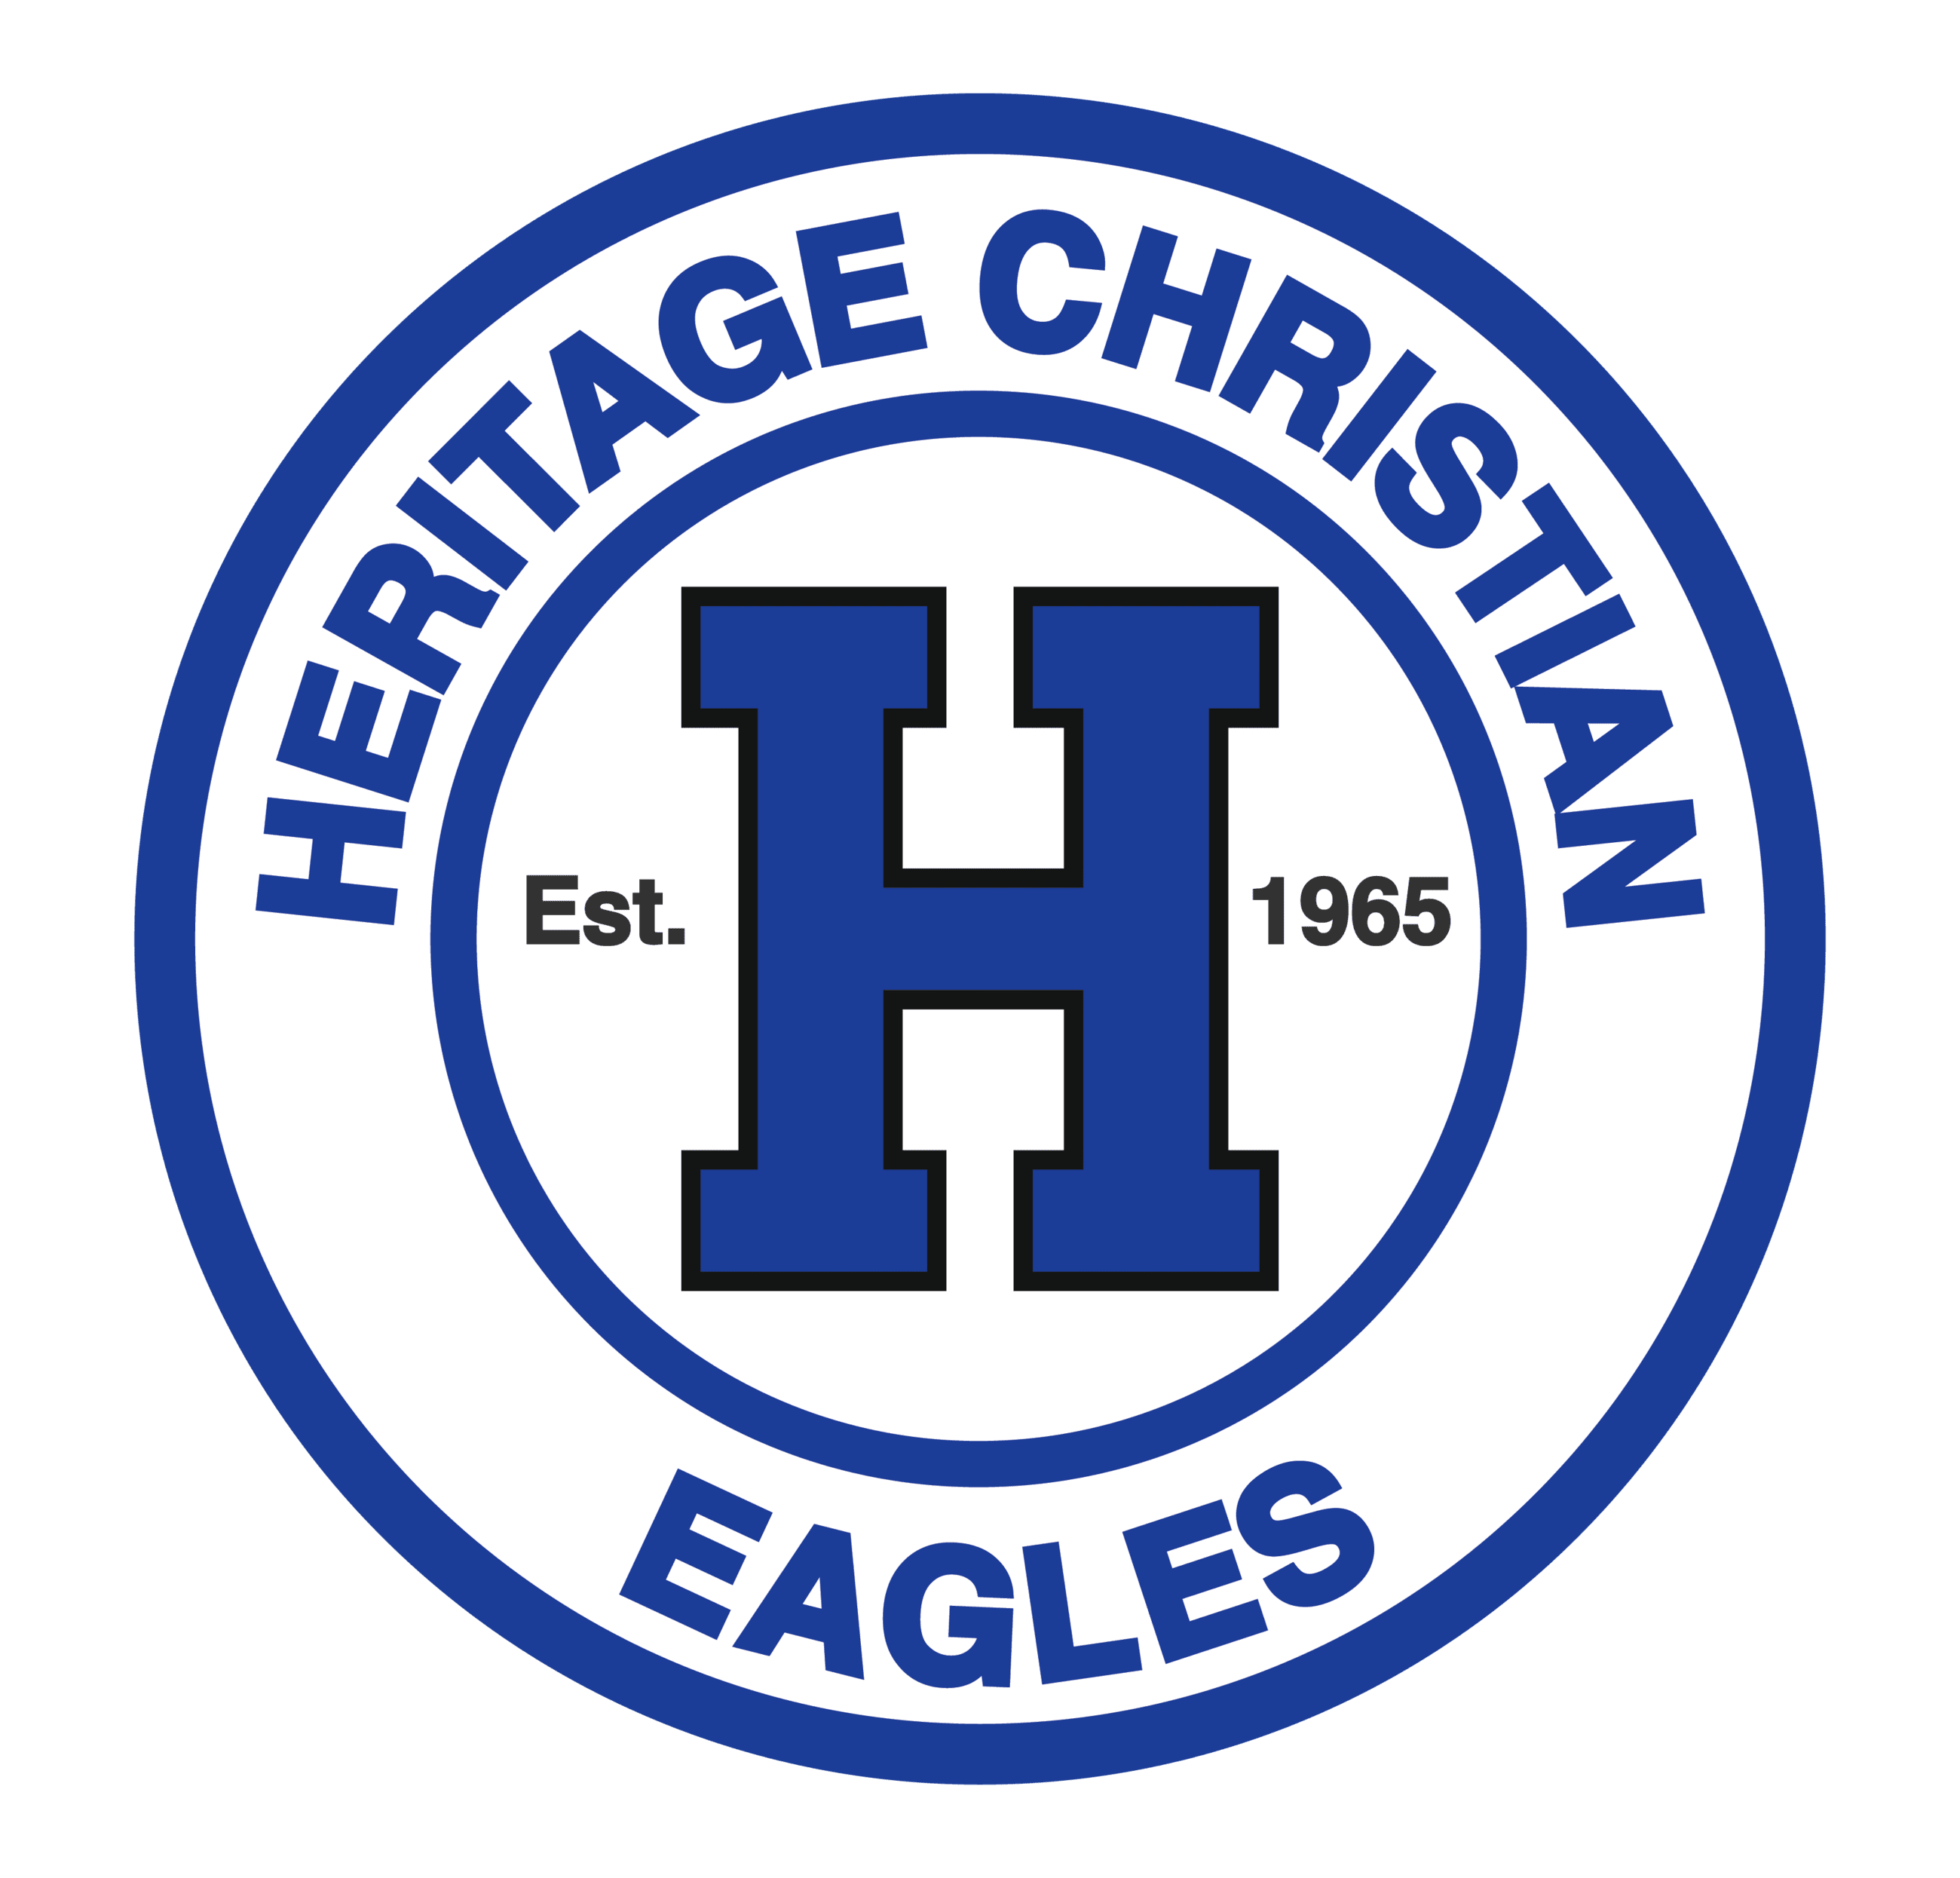 heritage christian eagles Opens in new window